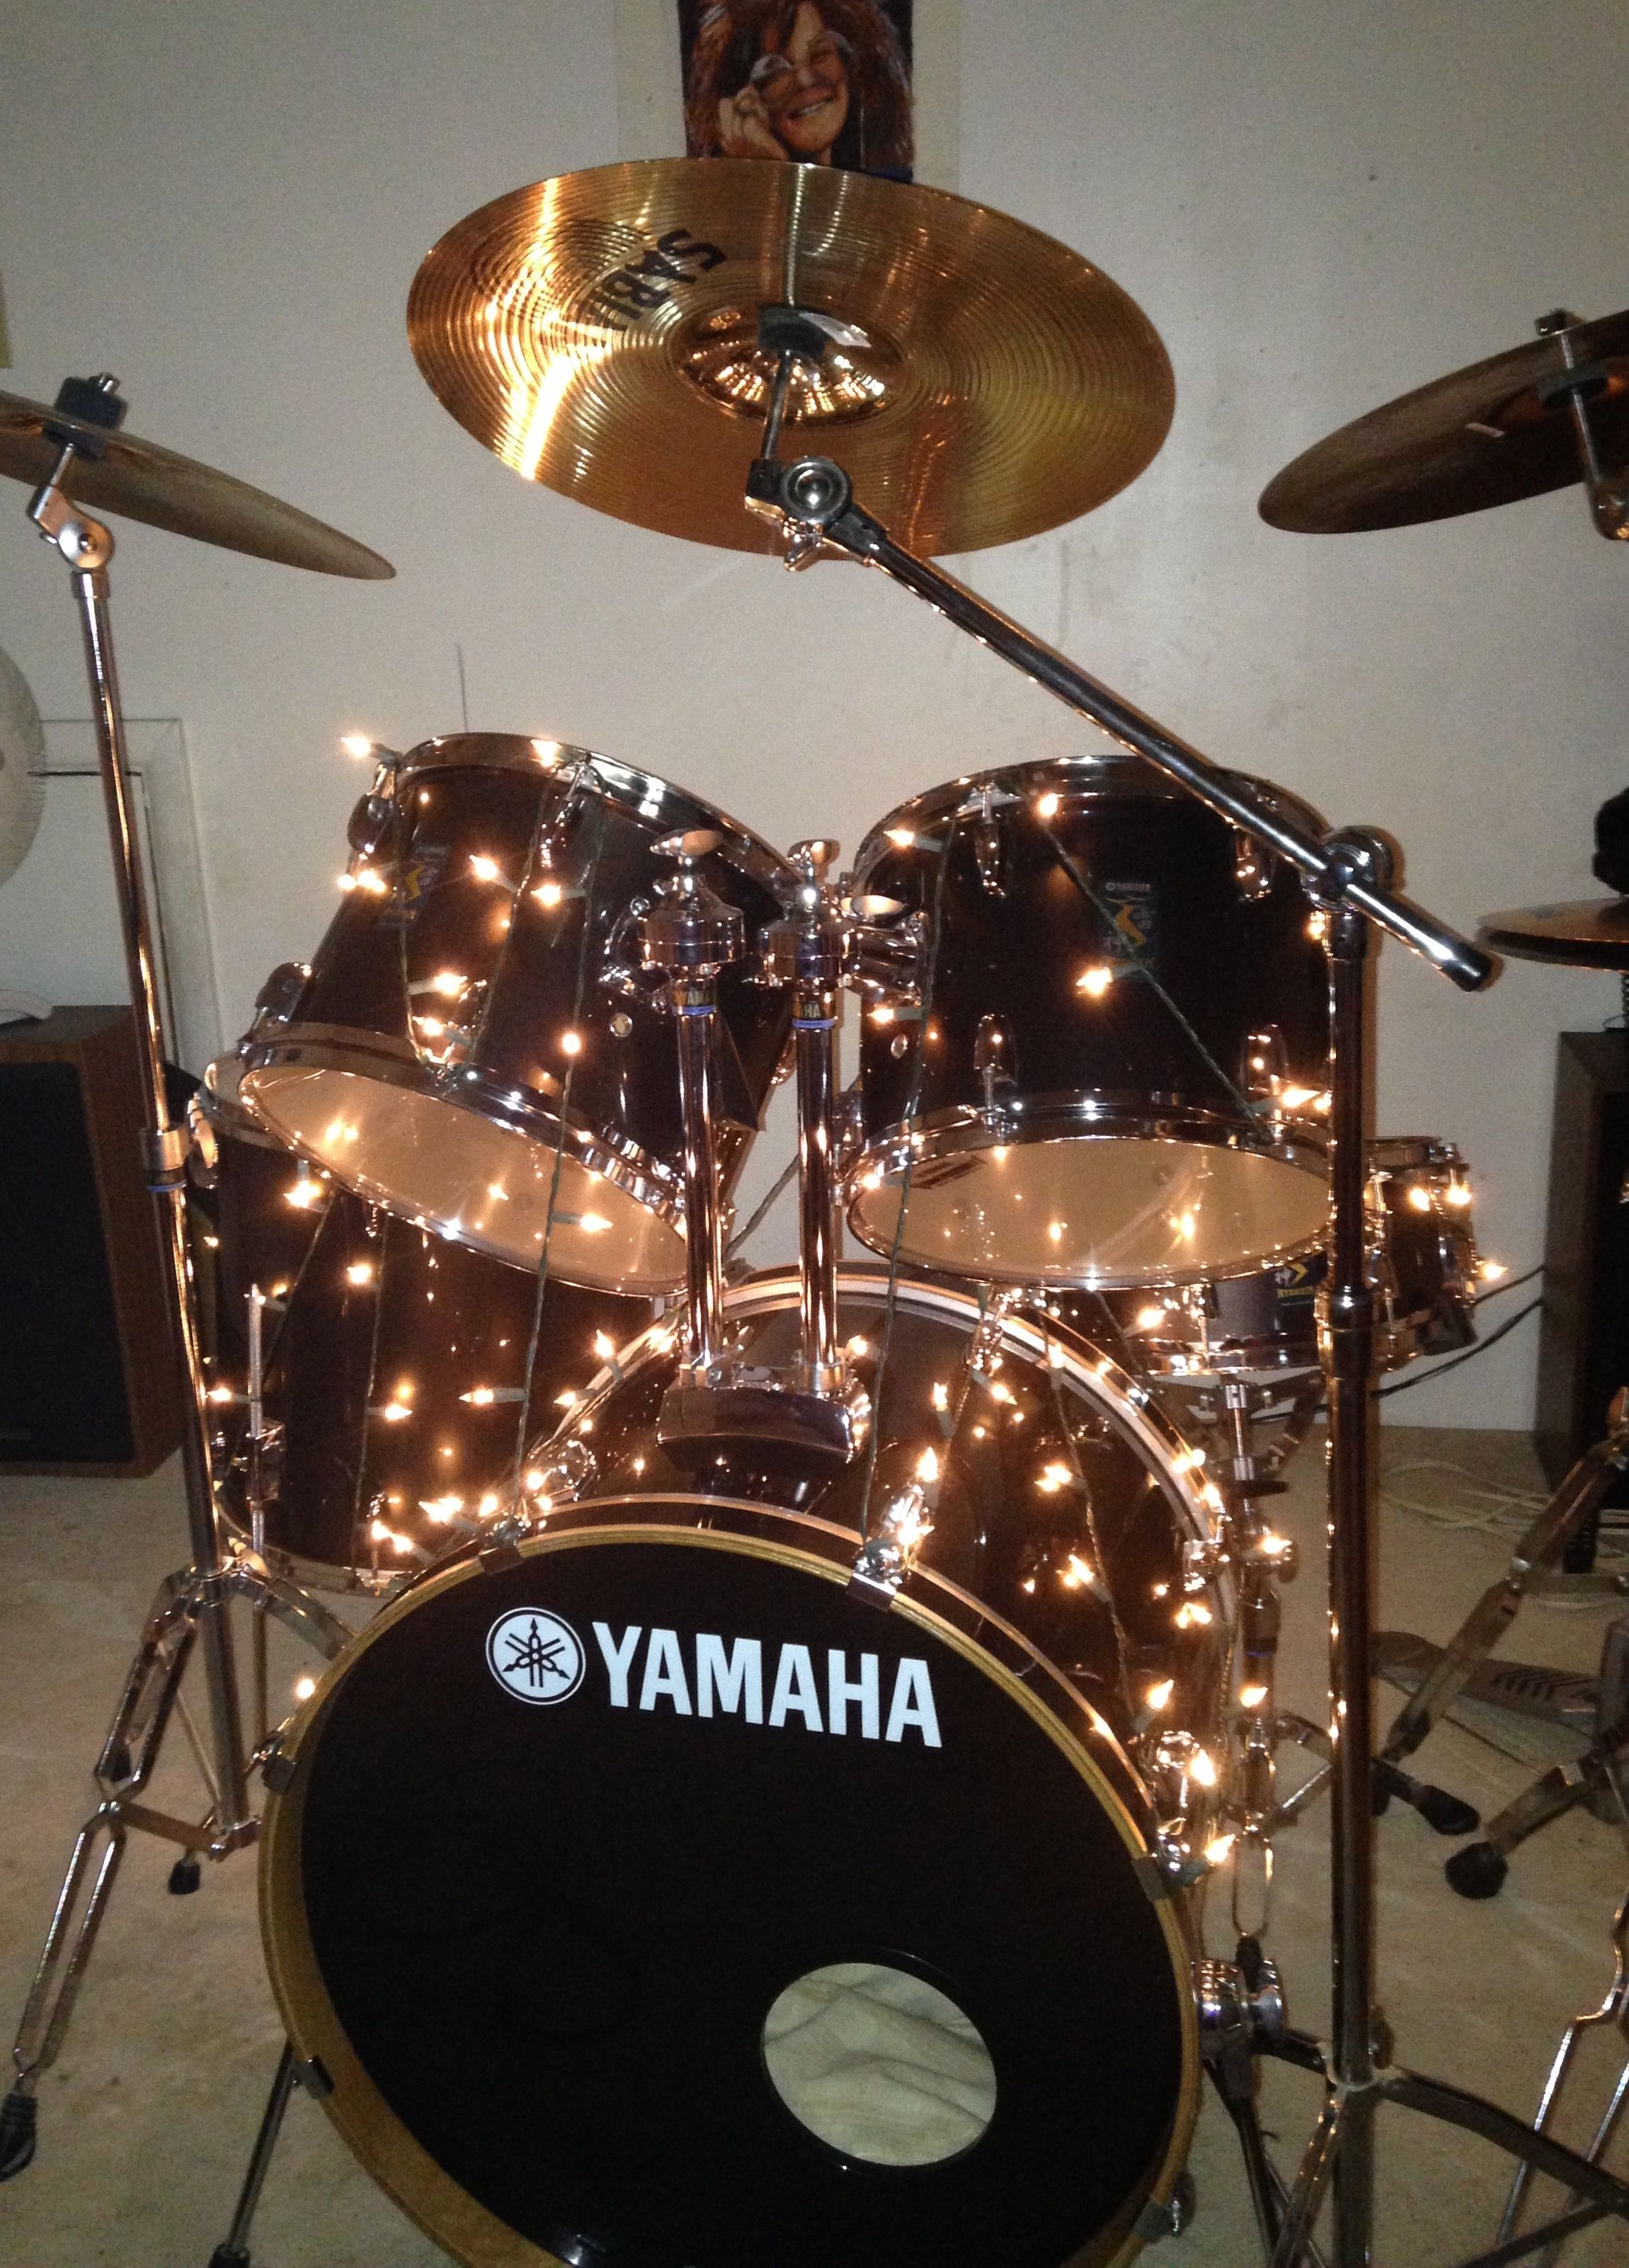 My Love My Passion Yamaha Rydeen 5 Piece Set 12 Tom 13 Tom 14 Snare 16 Floor Tom 22 Kick Cymbals 20 Percussion Drums Yamaha Drums How To Play Drums